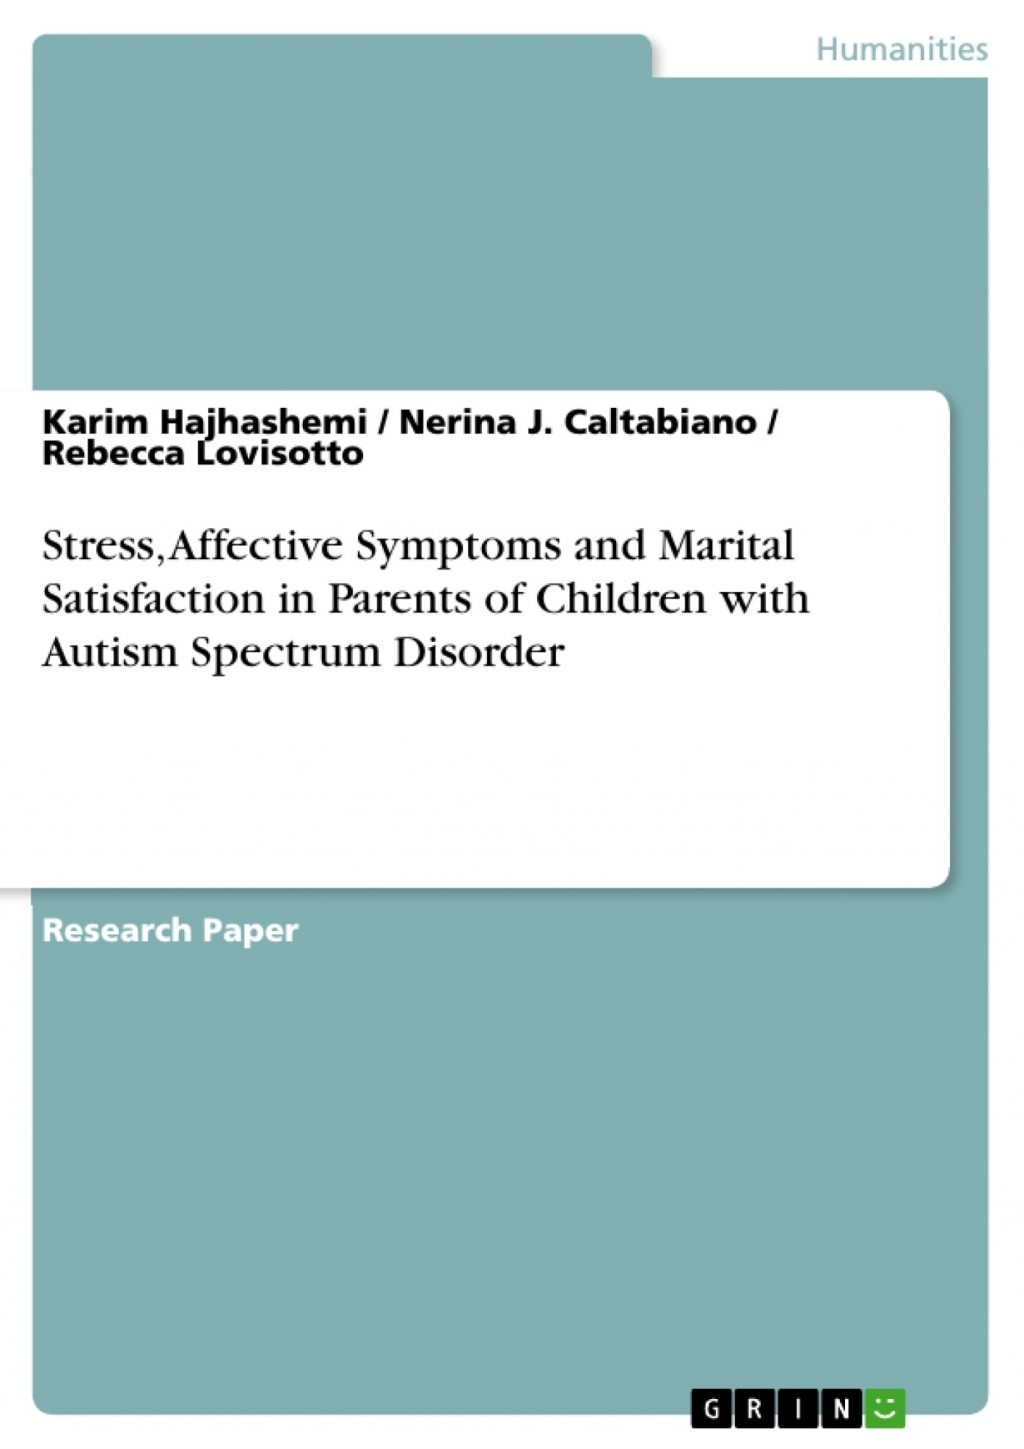 009 313796 0 Autism Spectrum Disorder Researchs Awesome Research Papers Paper Topics Large